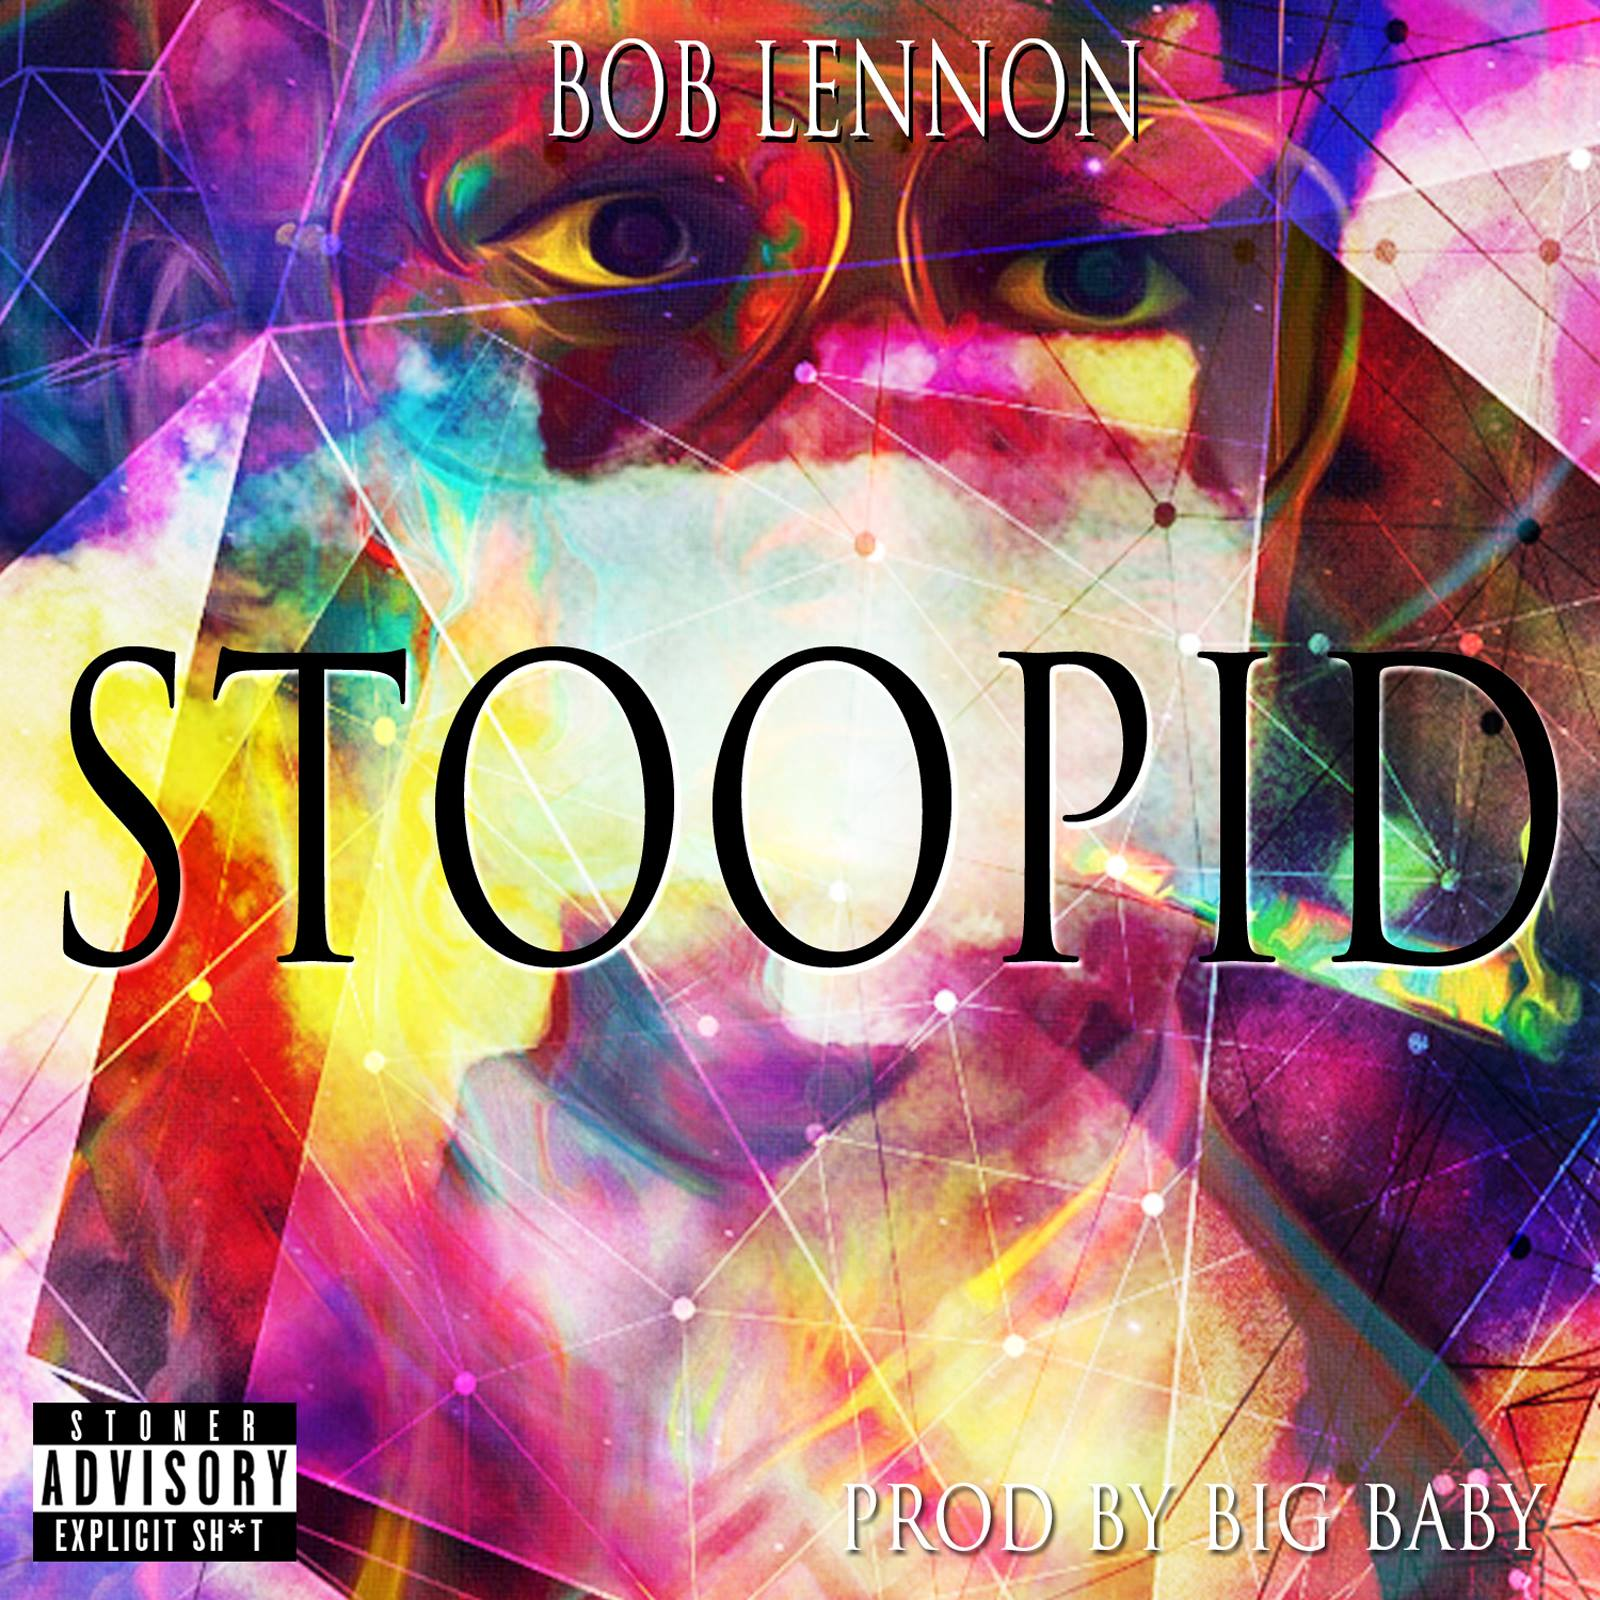 Bob Lennon Stoopid produced-Big Baby